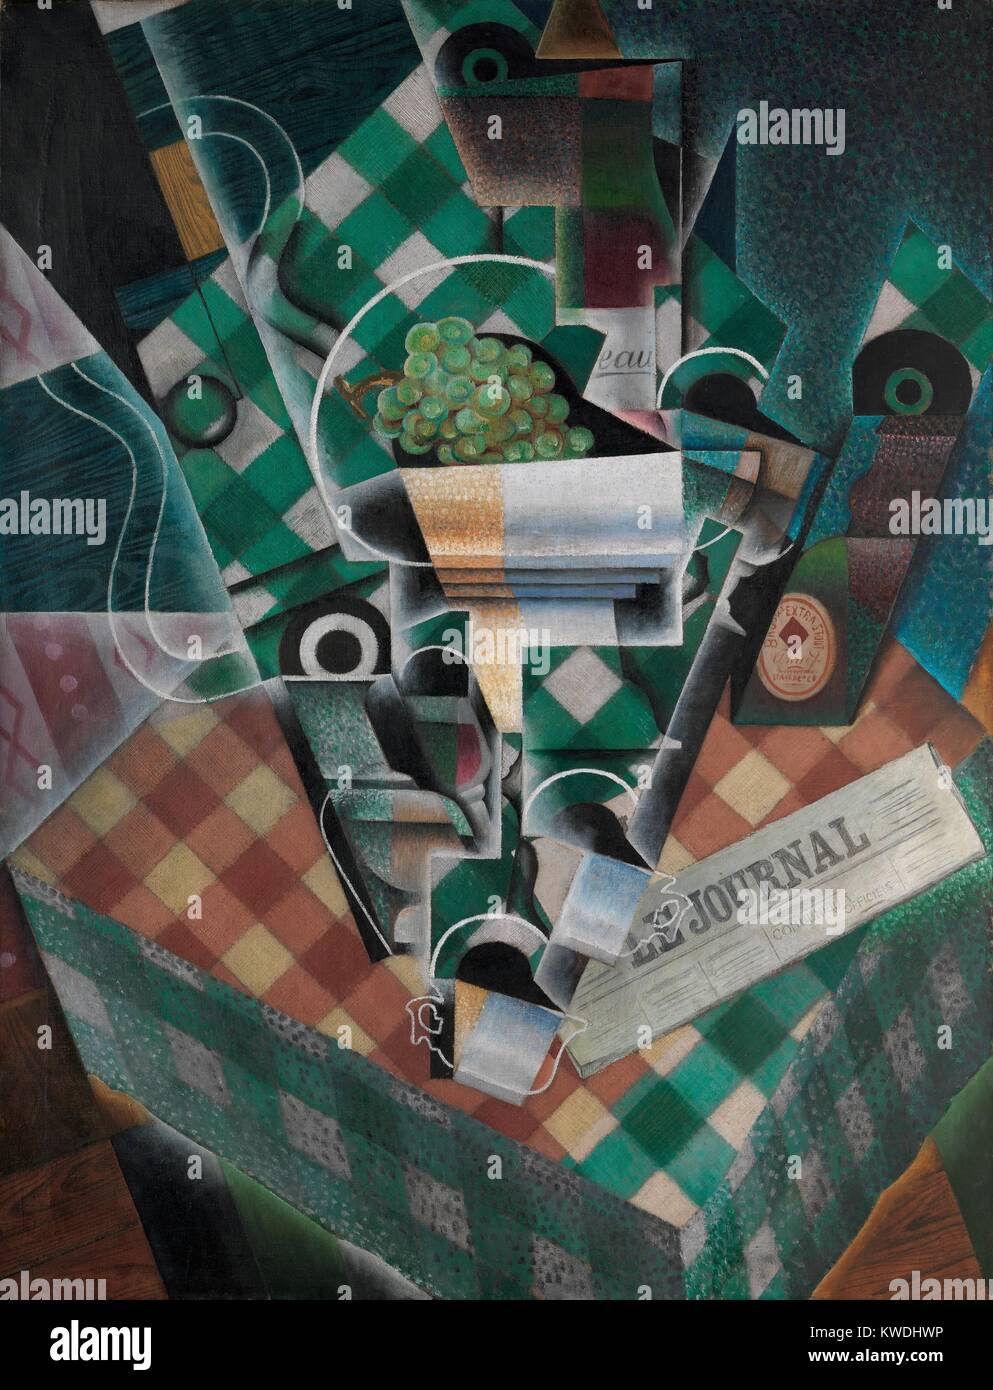 STILL LIFE WITH CHECKED TABLECLOTH, by Juan Gris, 1915, Spanish Cubist painting, oil and graphite on canvas. Gris - Stock Image